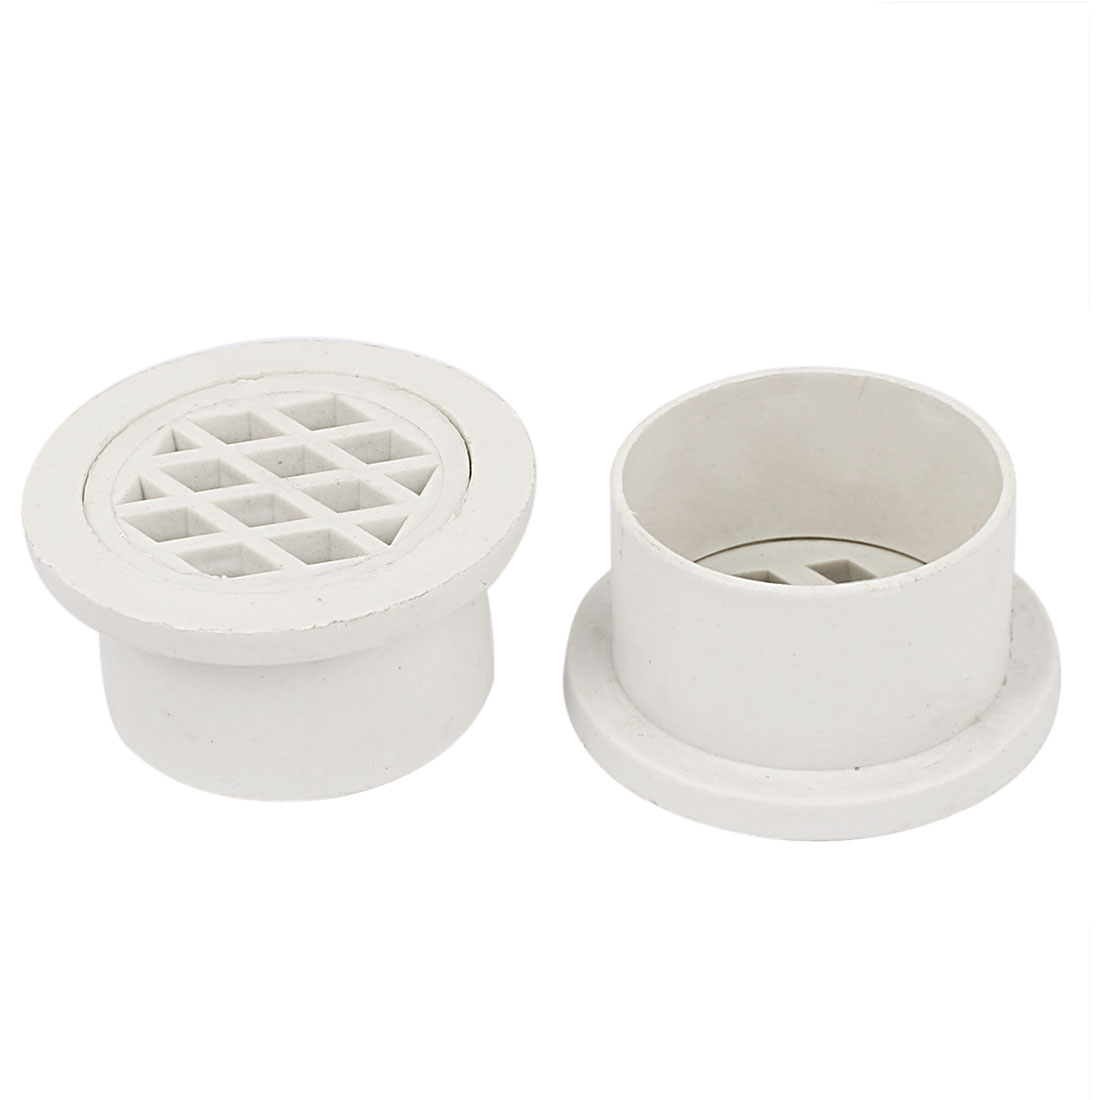 UXCELL Basement Toilet White Pvc Round Strainer Floor Drain Cover 2Pcs White